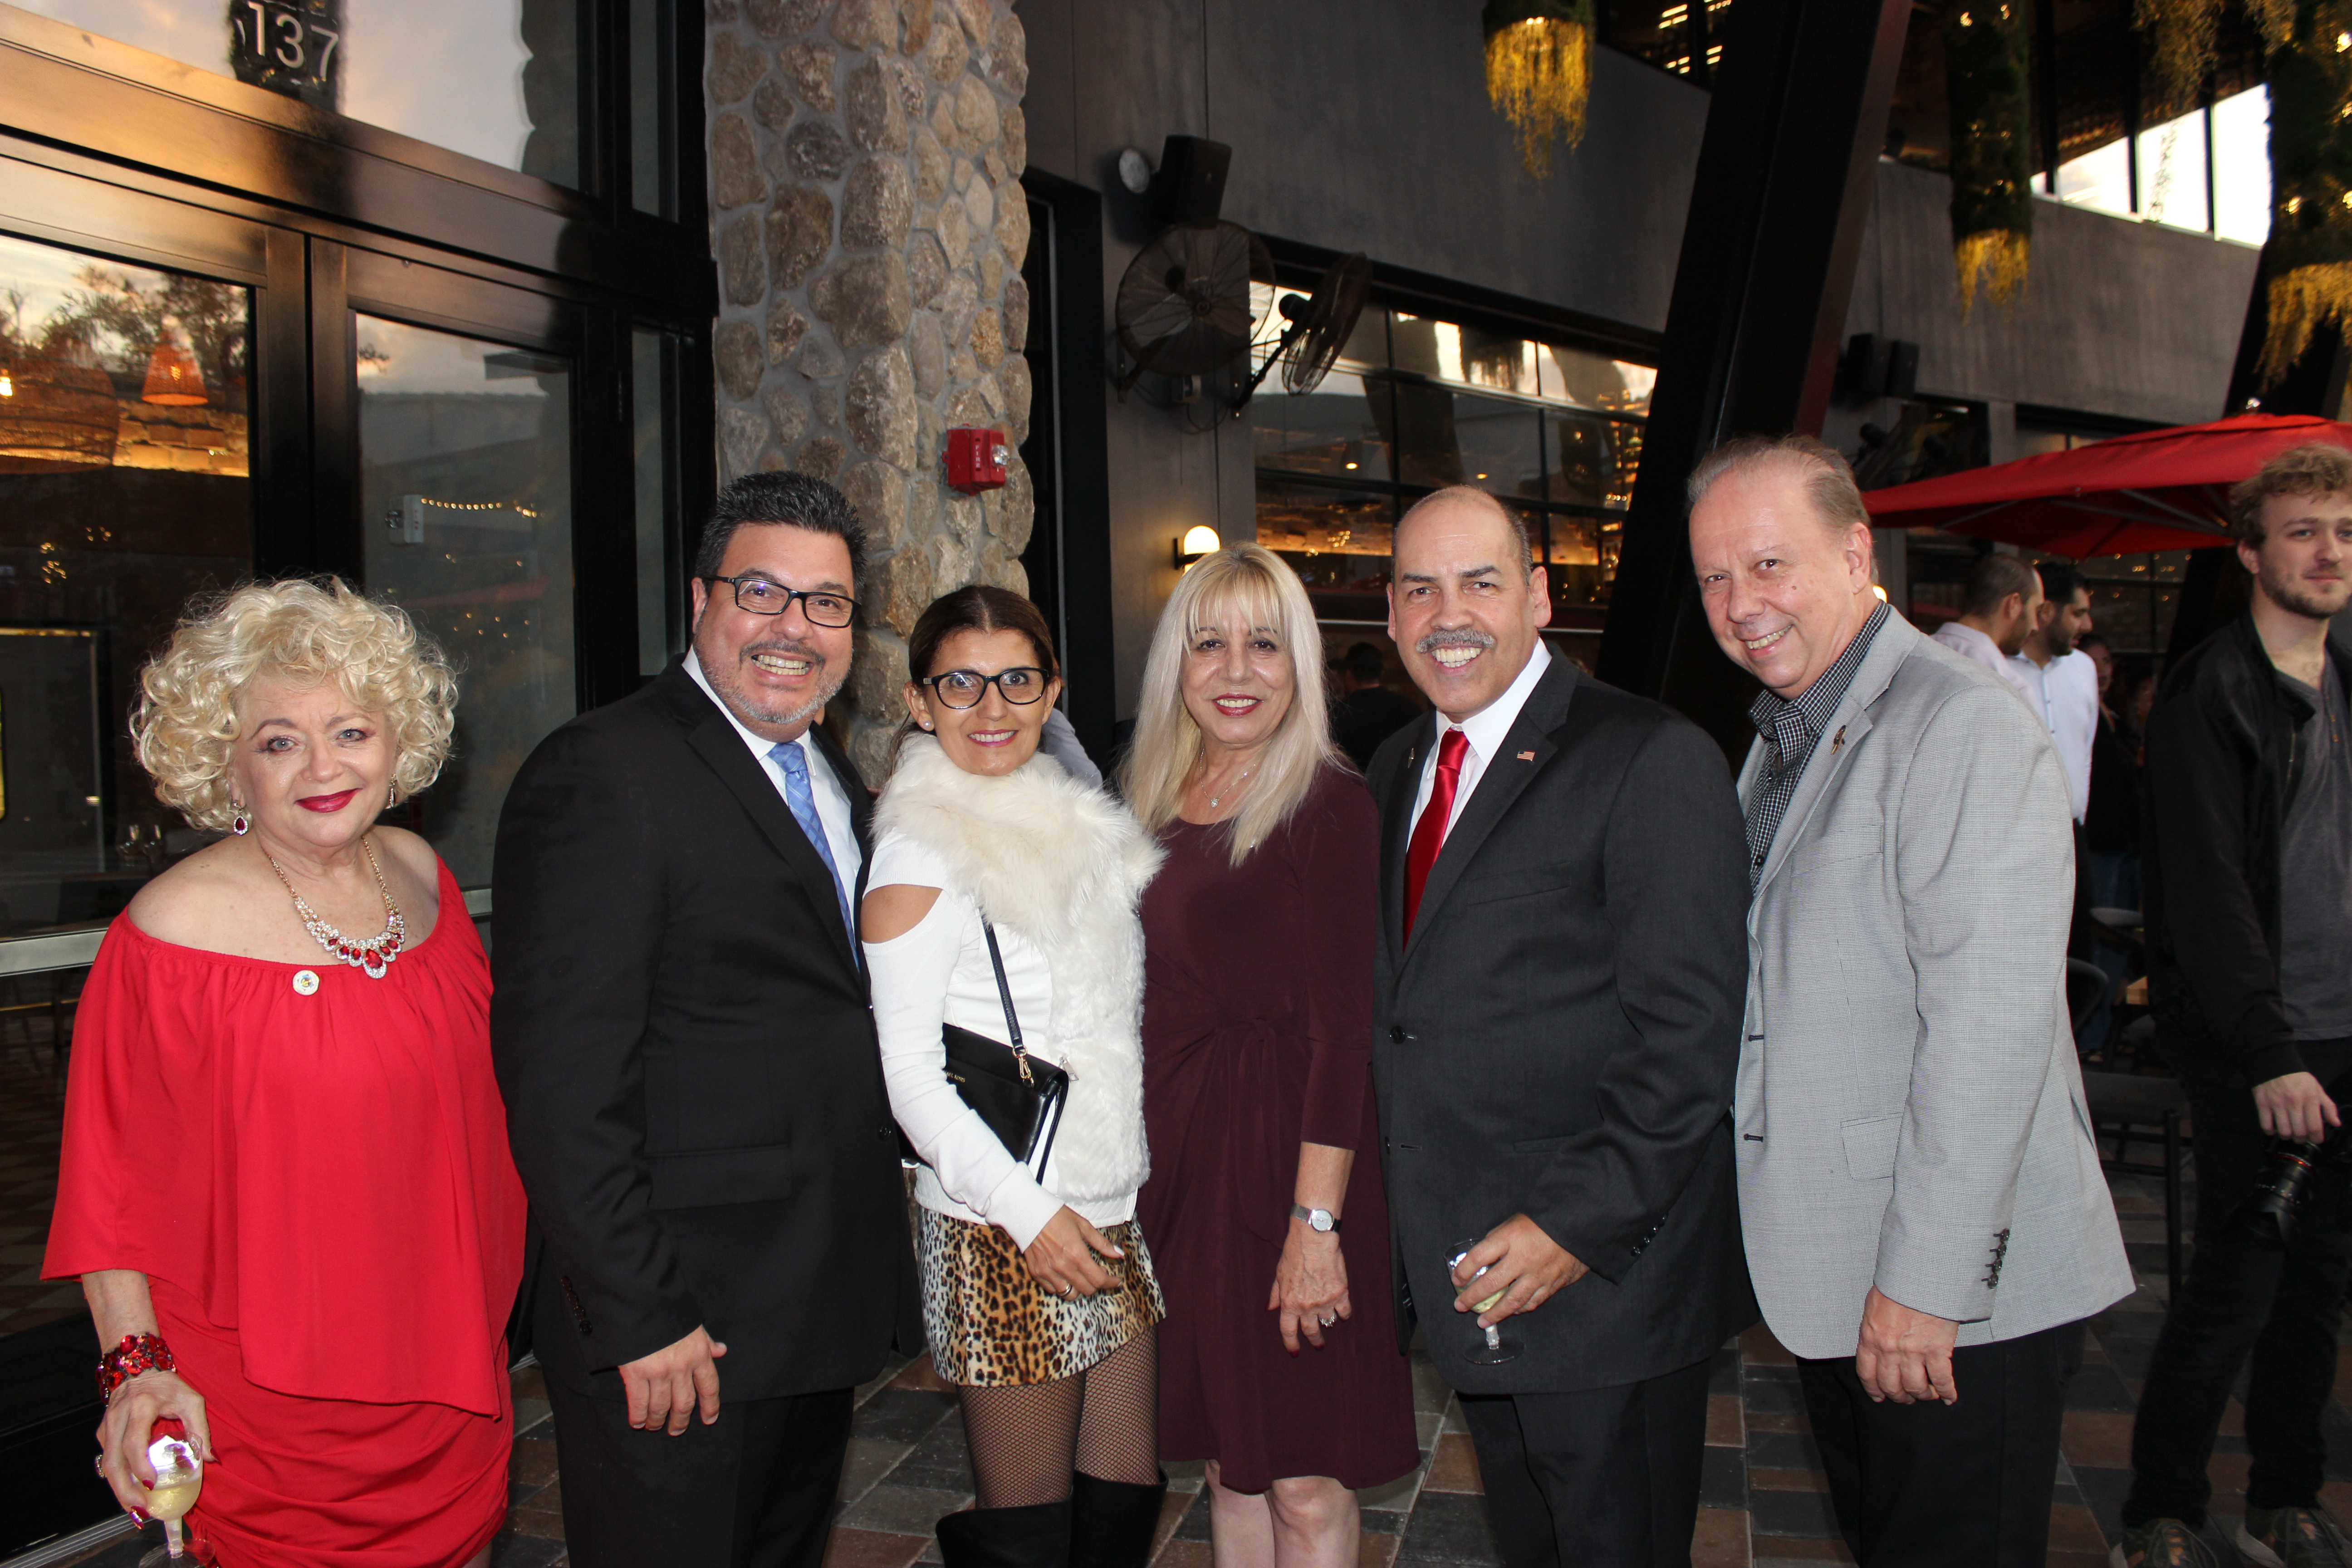 Doral Chamber of Commerce introduces Novecento Grand Opening, group photo with Manny Sarmiento, Carmen Lopez, and Blache de Jesus.